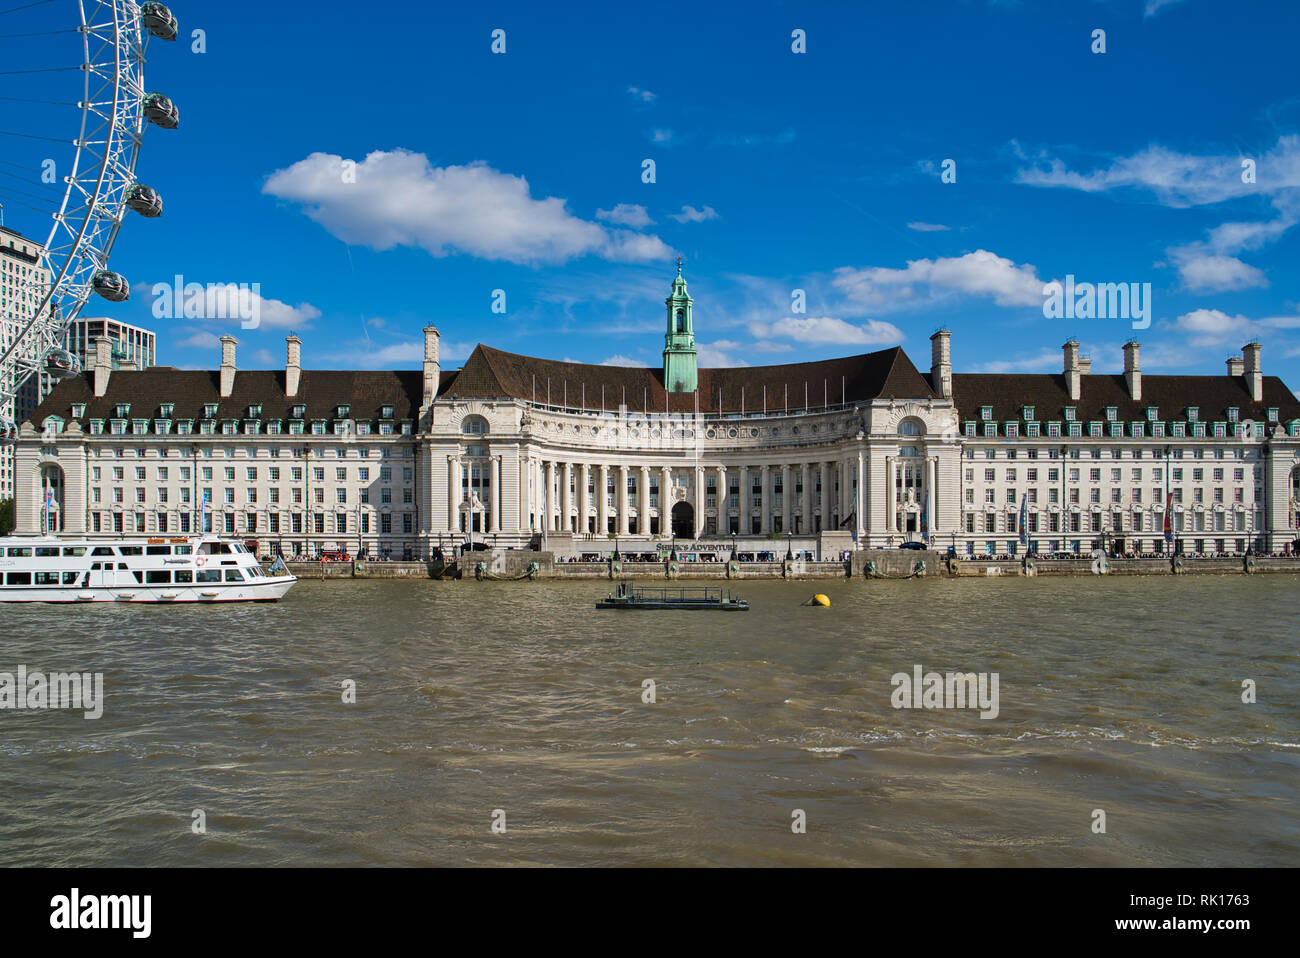 LONDON, UK - SEPTEMBER 9, 2018: London Aquarium in the County Hall and the London Eye Stock Photo